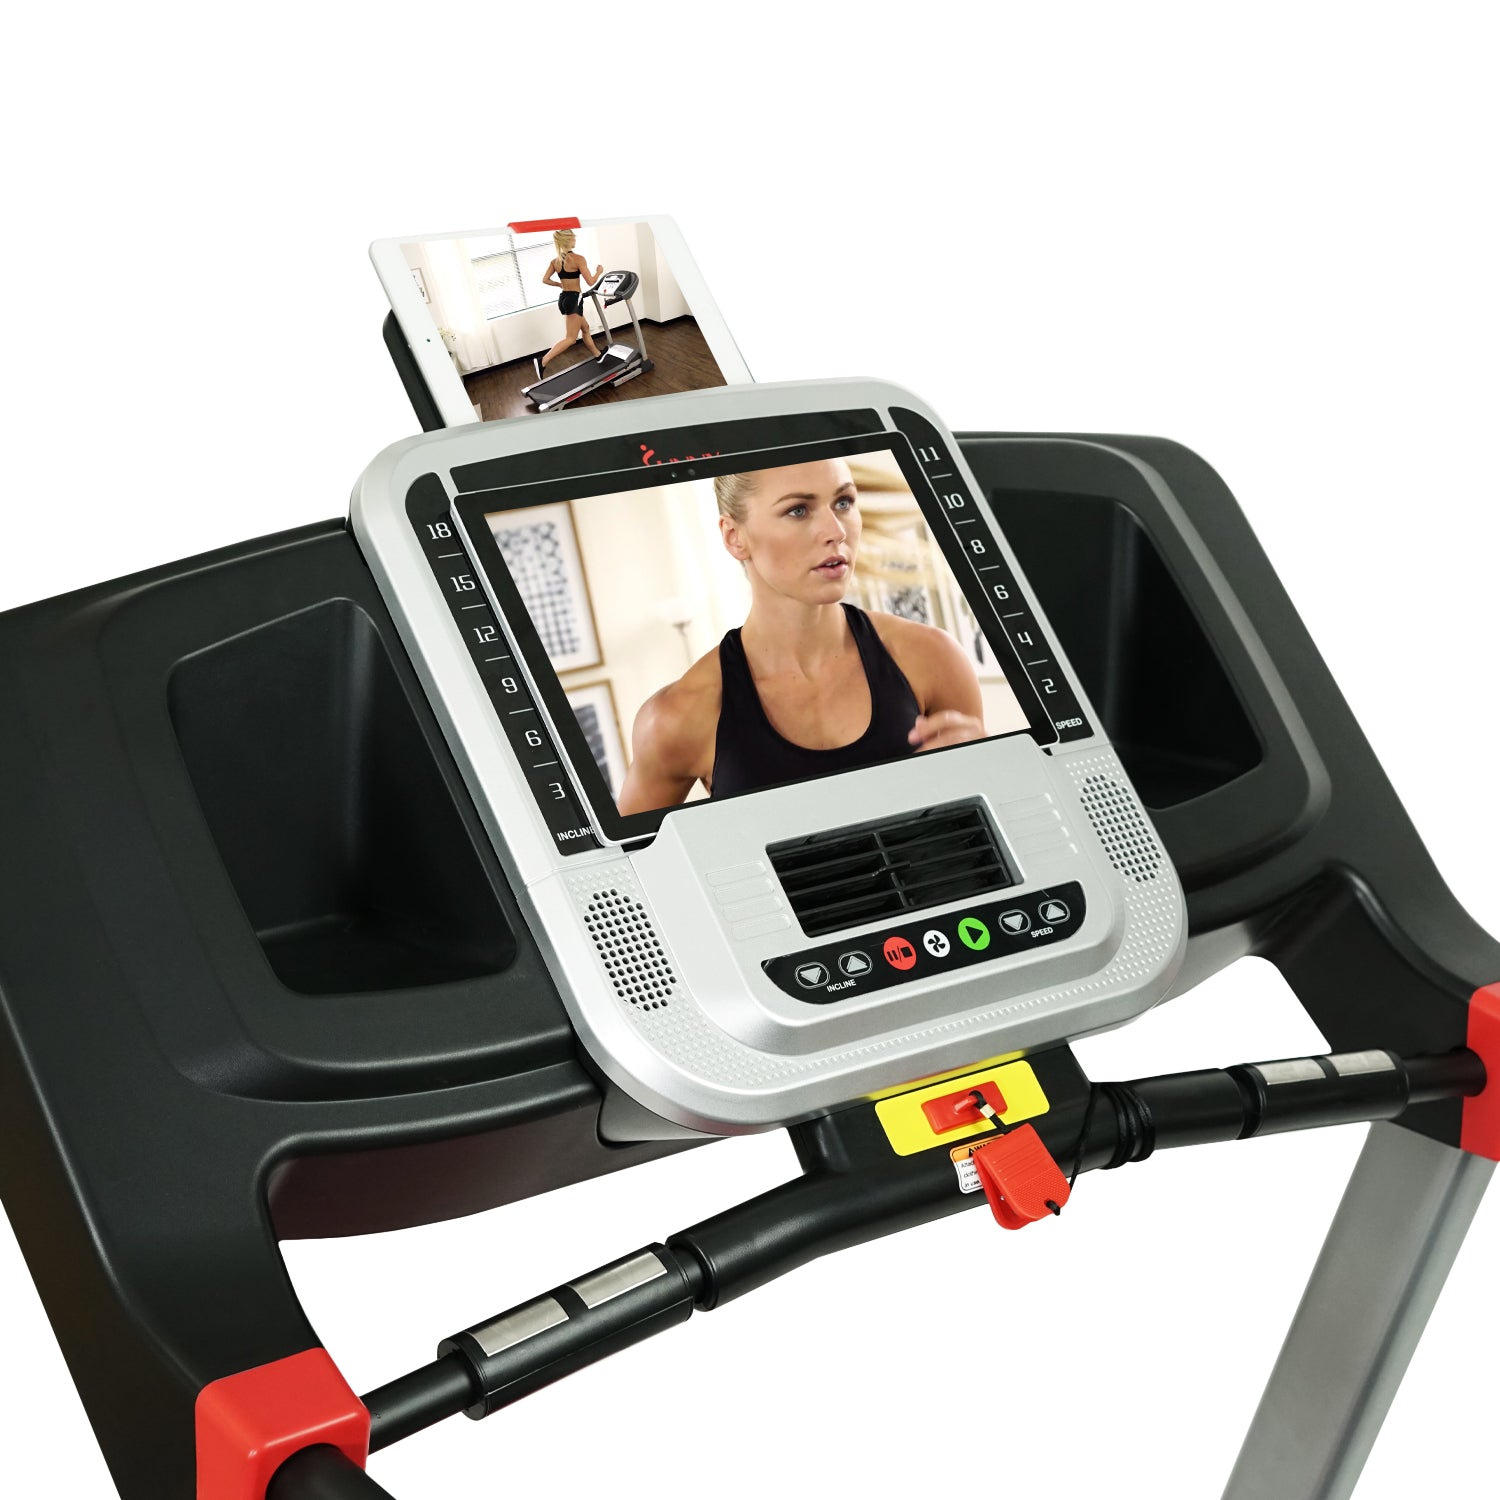 sunny-health-fitness-treadmills-evo-fit-incline-treadmill-bluetooth-dual-device-holders-SF-T7955-device-holders